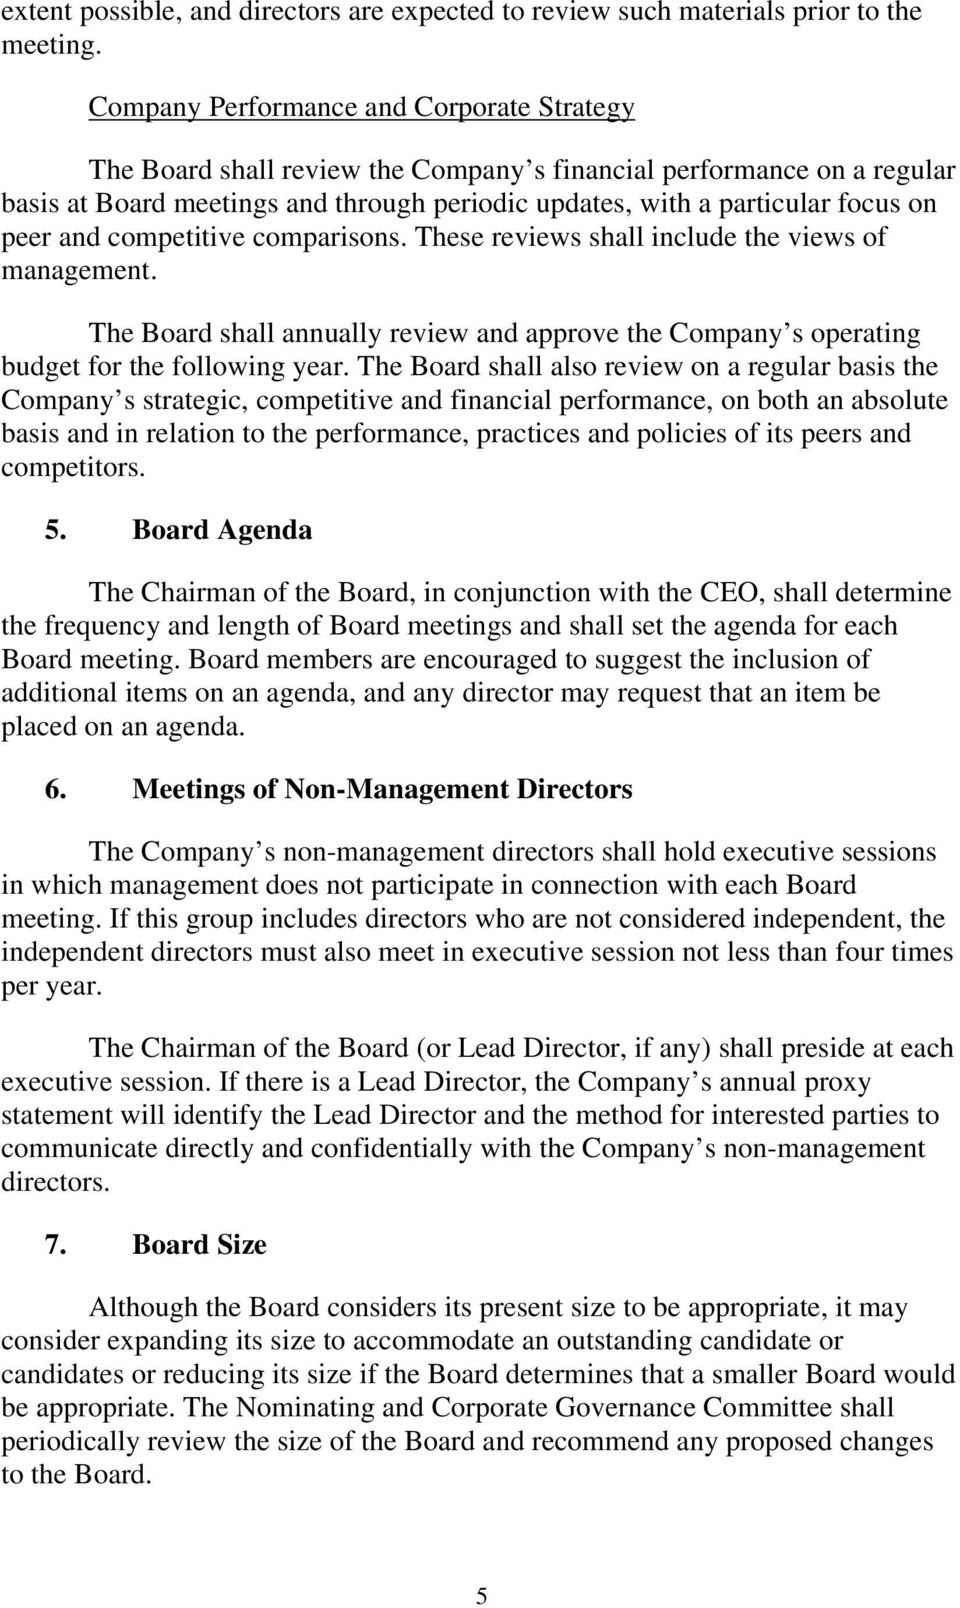 peer and competitive comparisons. These reviews shall include the views of management. The Board shall annually review and approve the Company s operating budget for the following year.